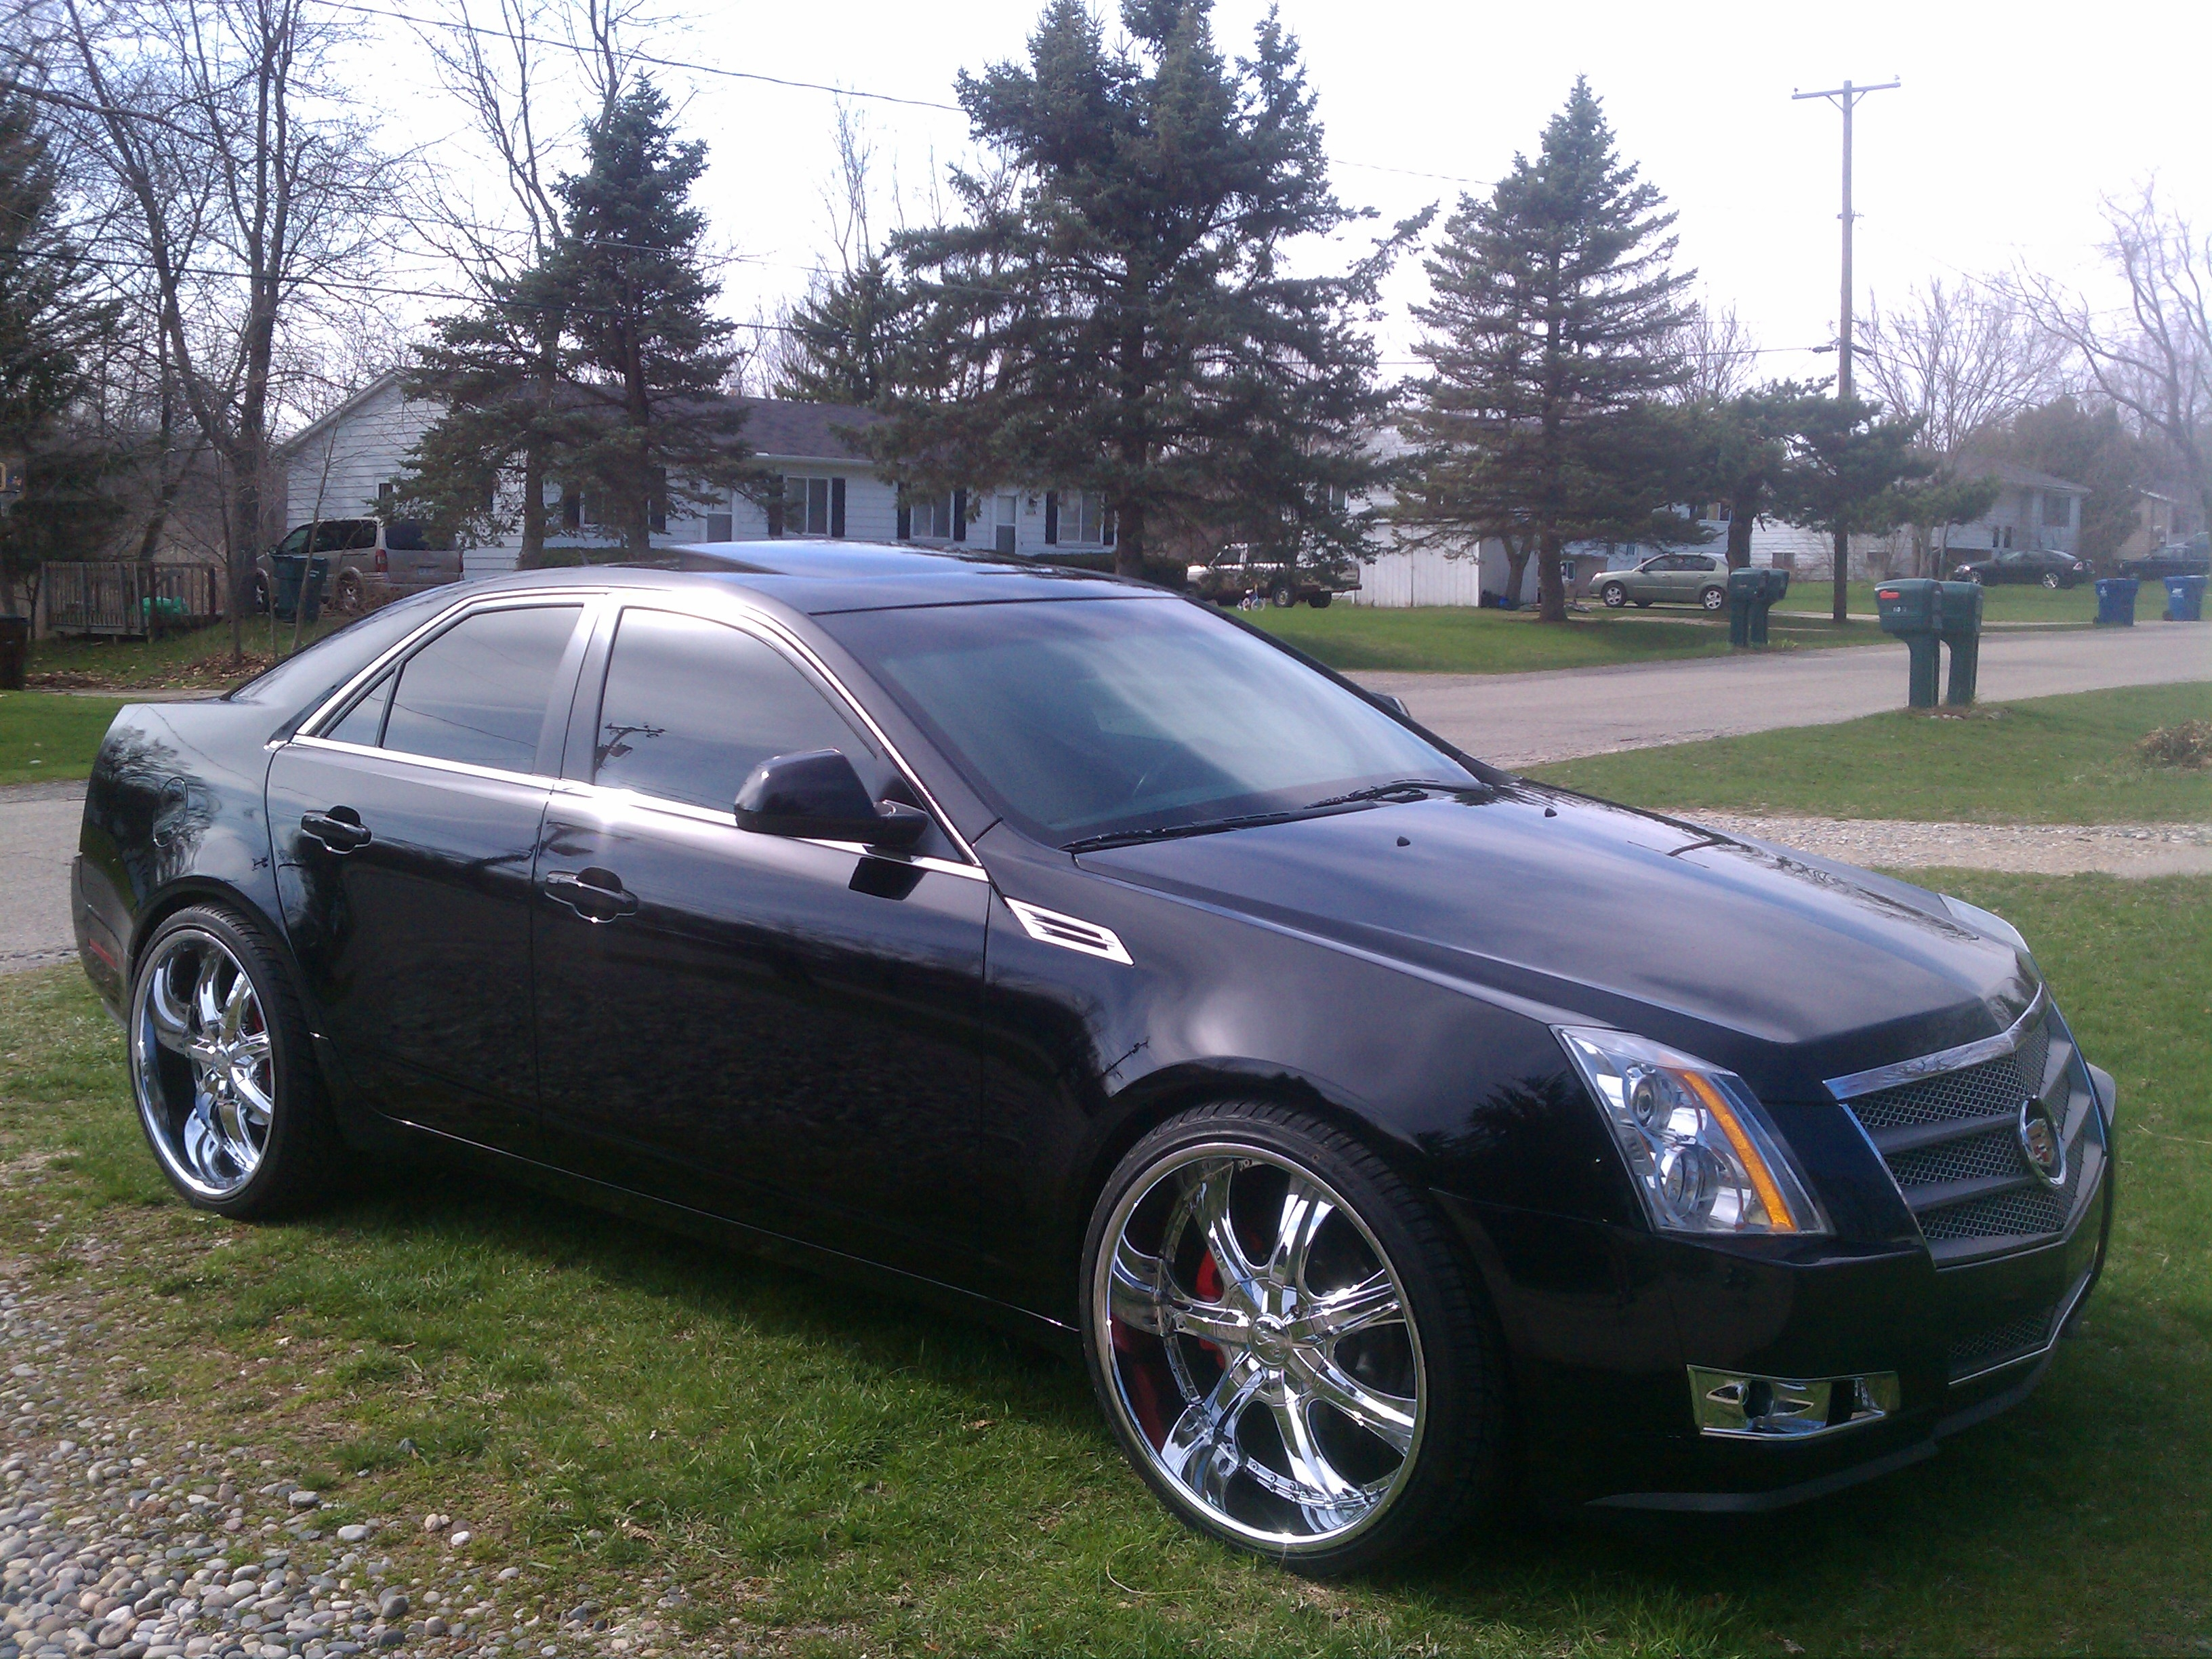 v cts coupe cadillac information faq gi door pictures ctc